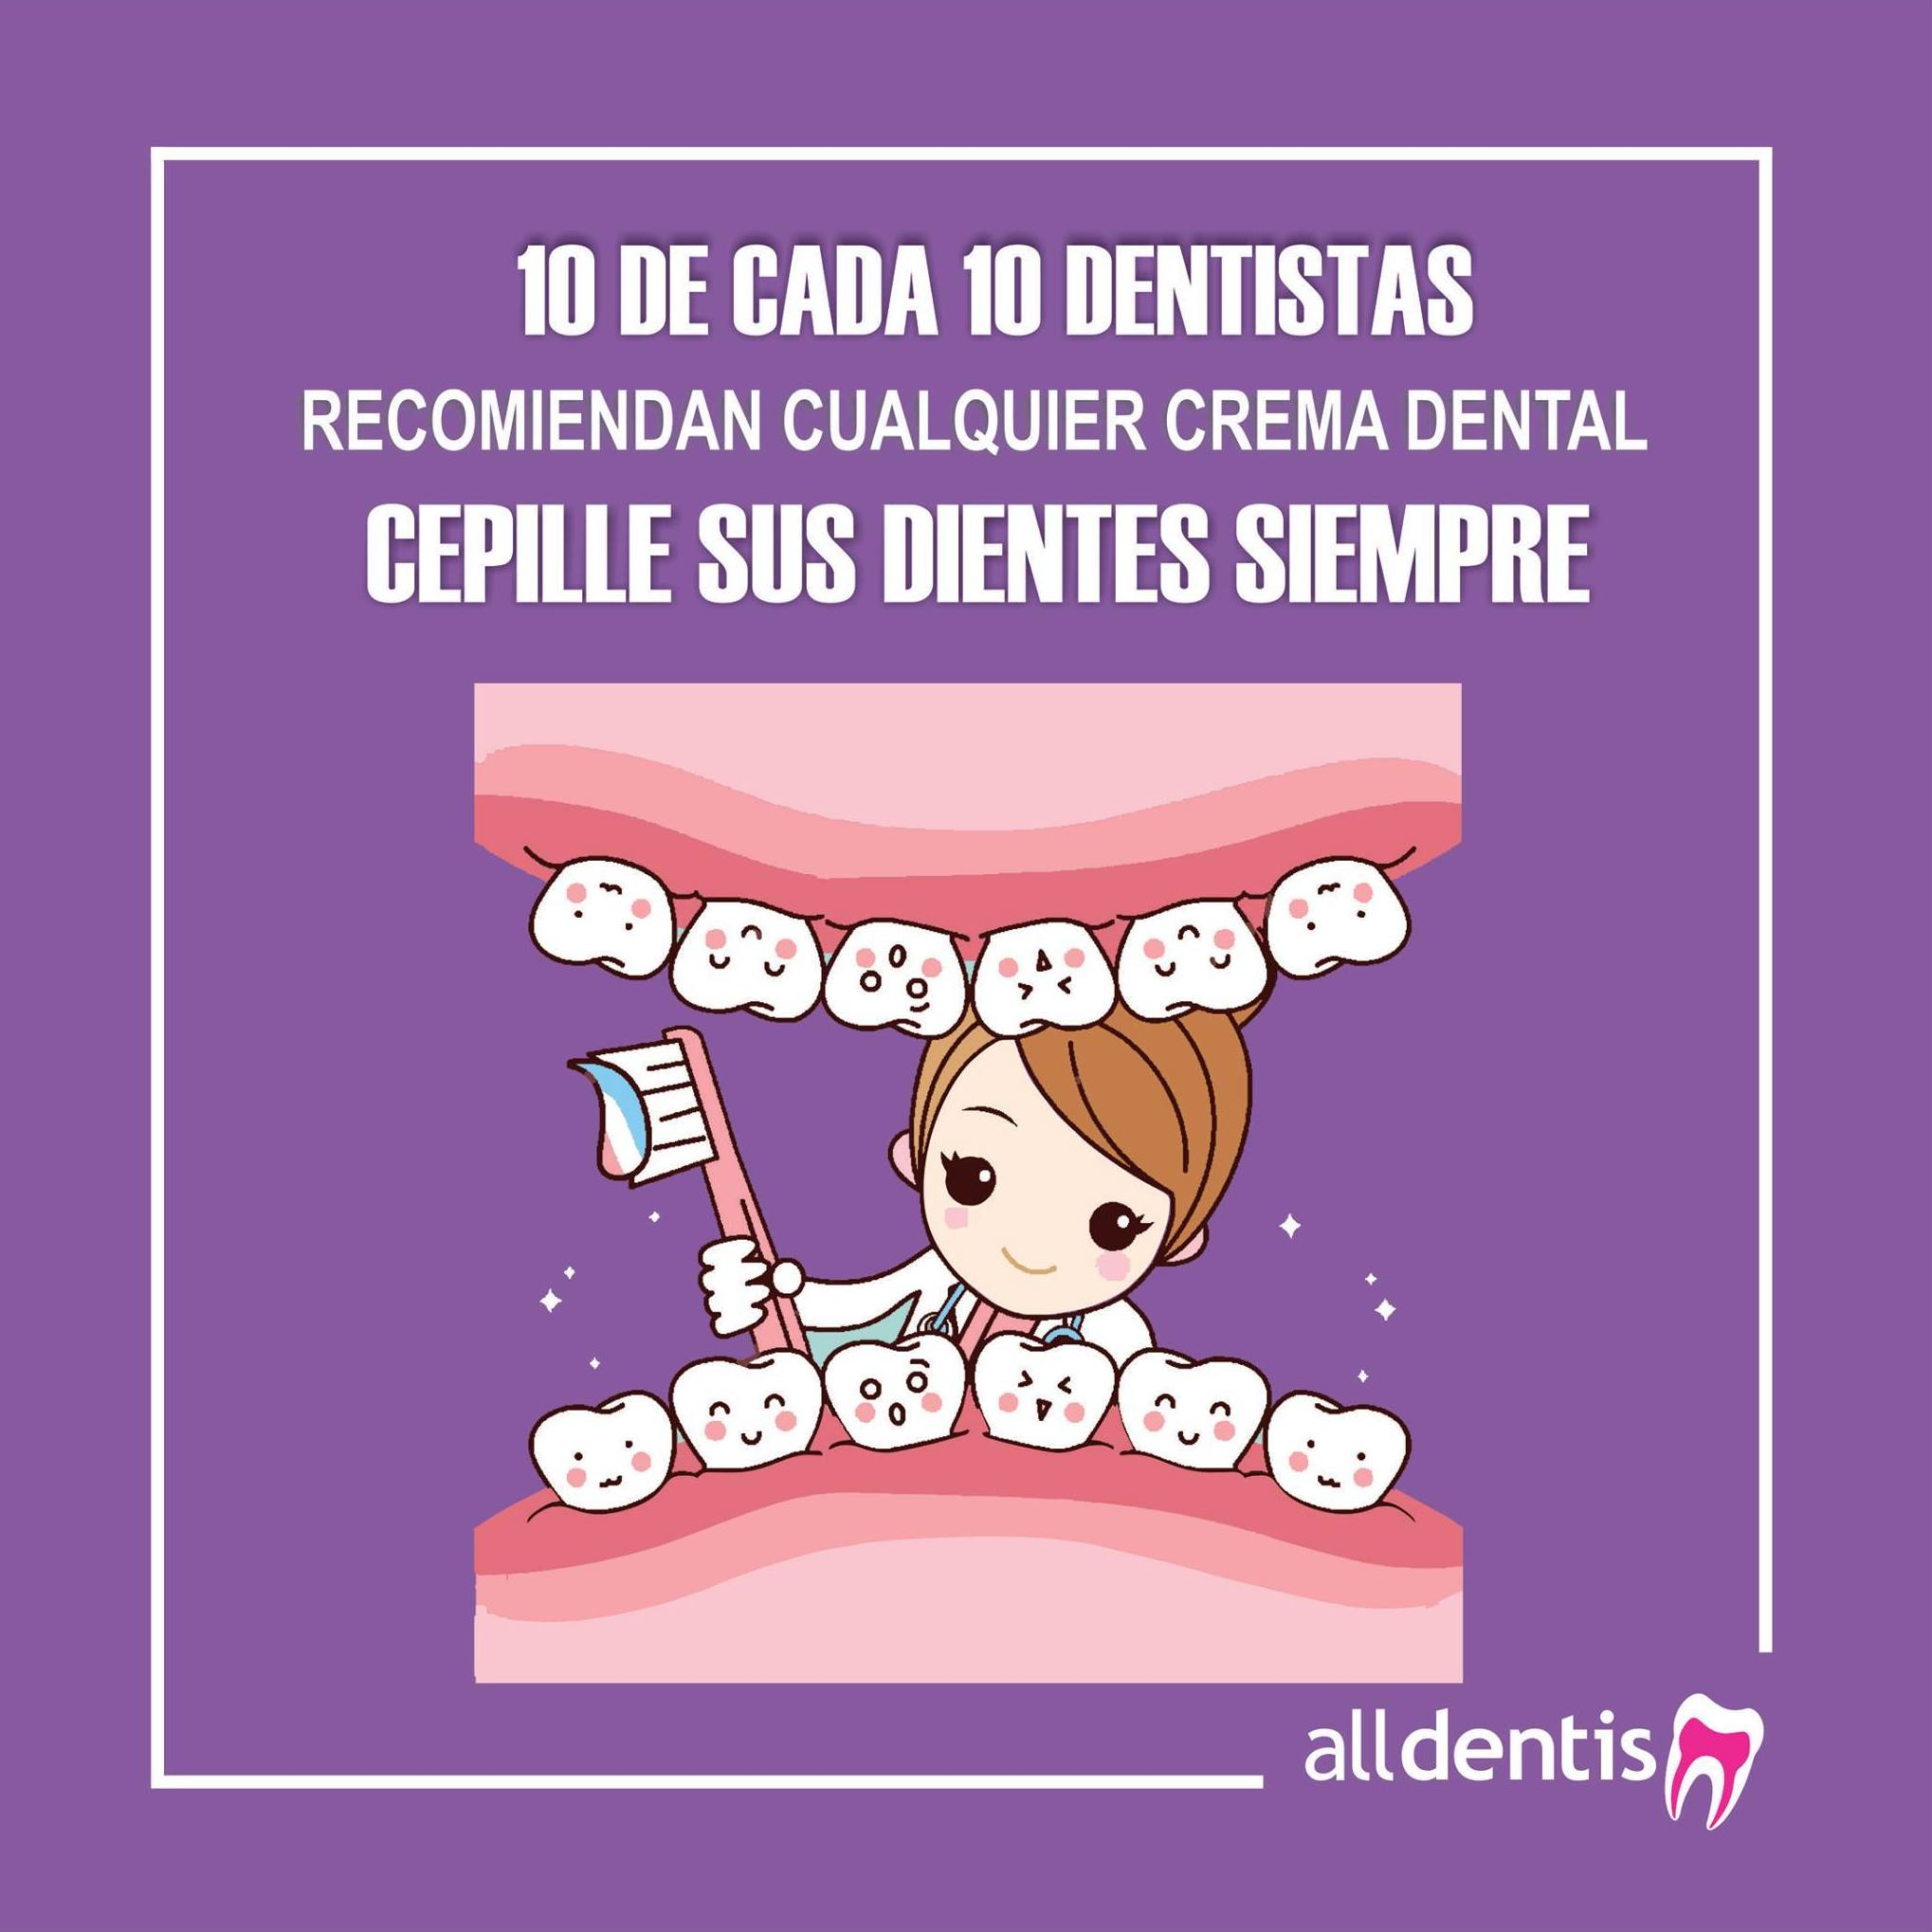 dentista en cadiz implantes